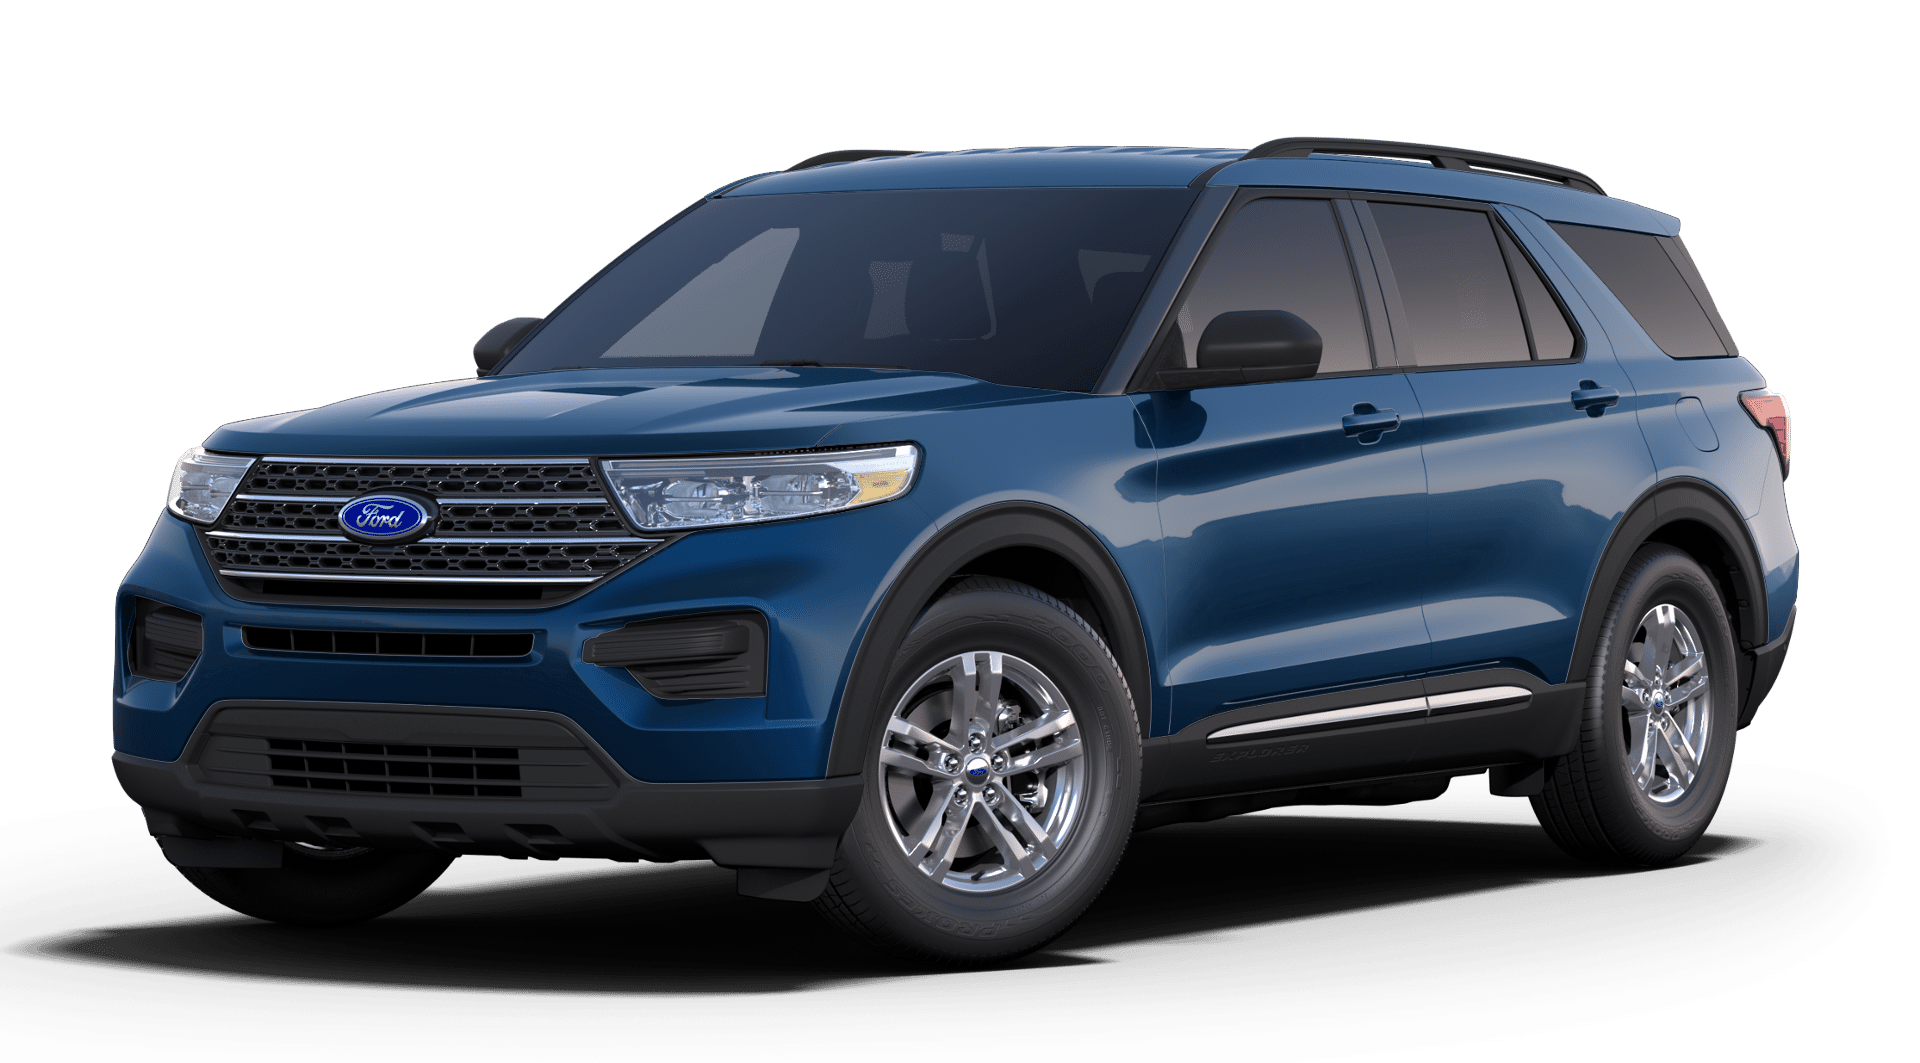 79 New 2020 Ford Explorer Availability History for 2020 Ford Explorer Availability